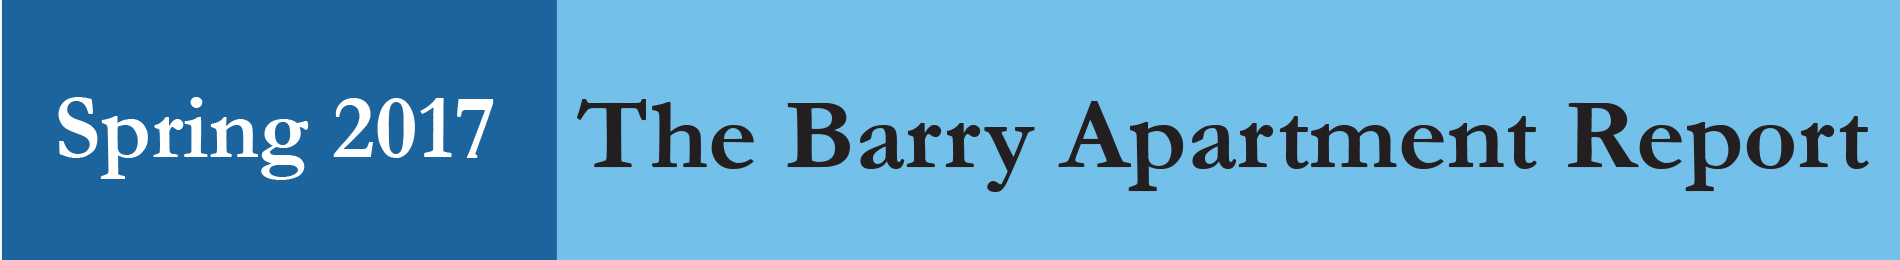 Barry Apartment Report - Spring 2017